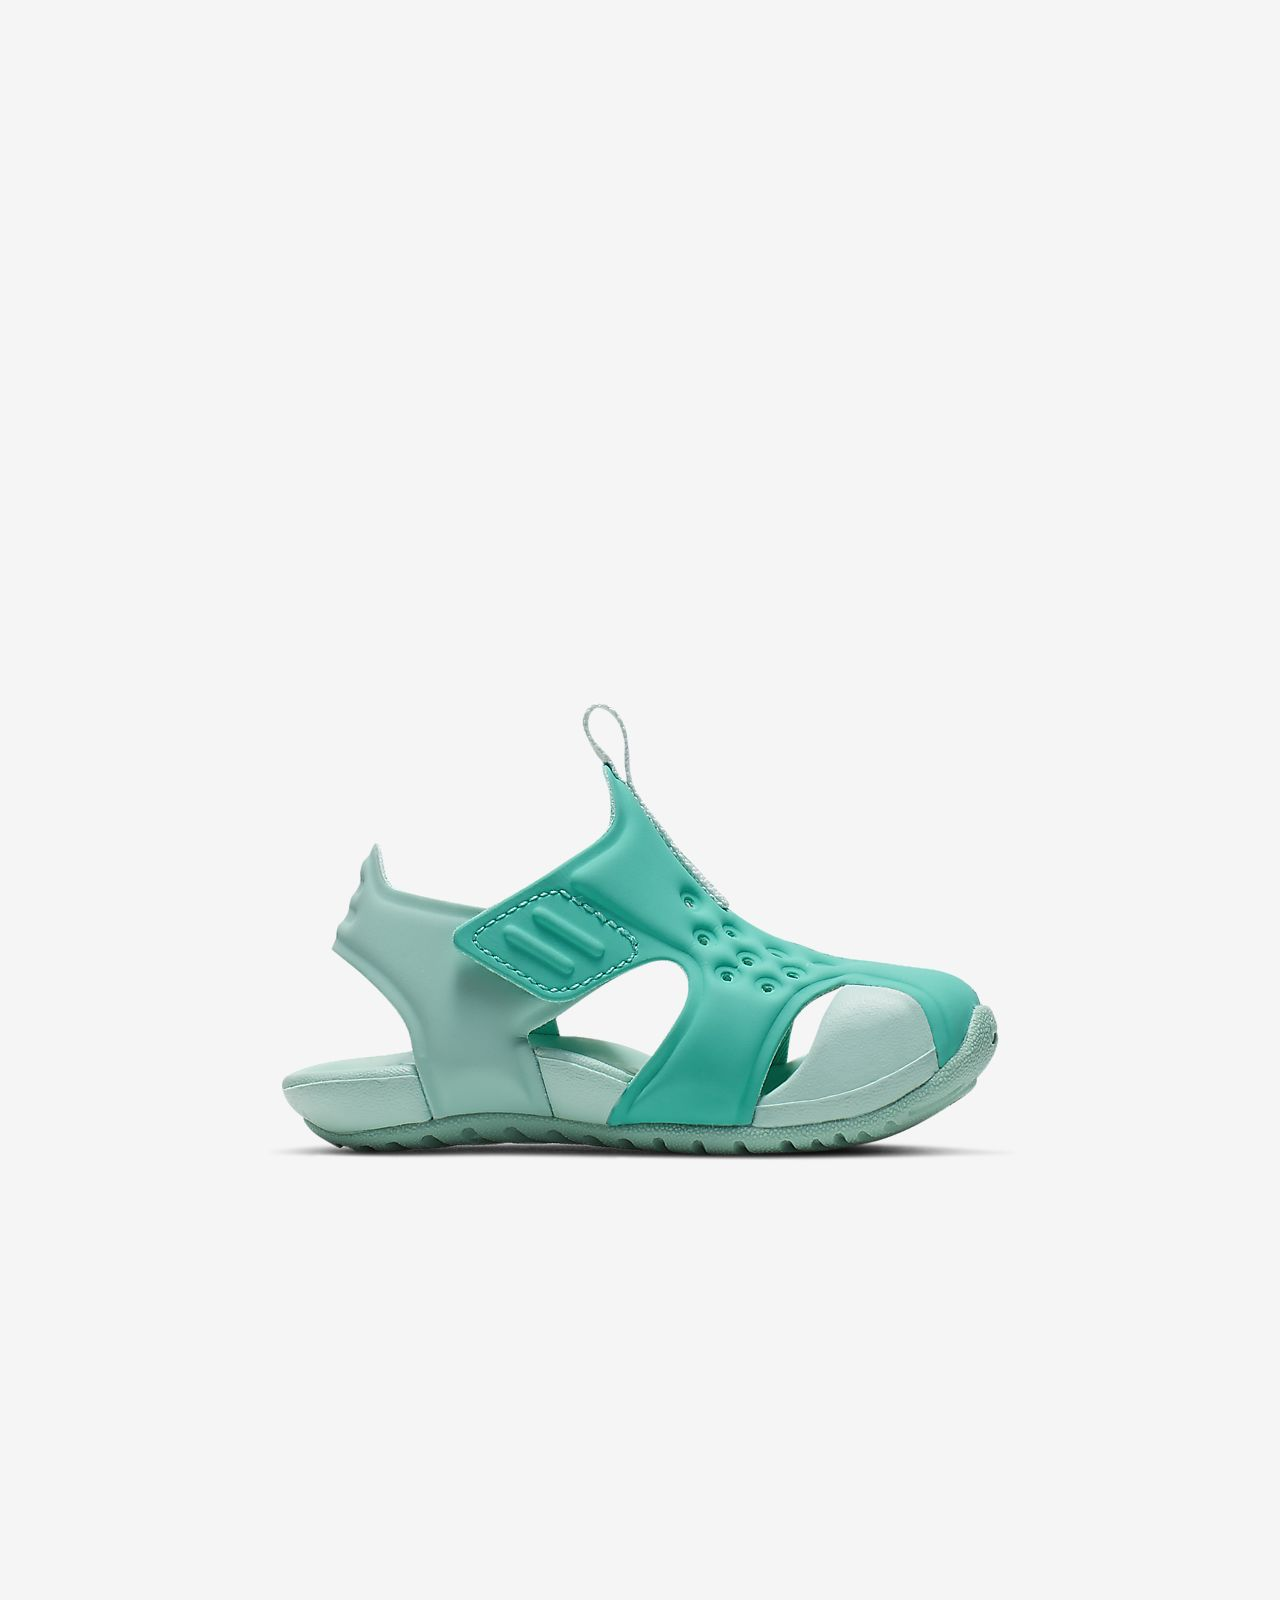 incredible prices buying now factory outlet Nike Sunray Protect 2 Infant/Toddler Sandal